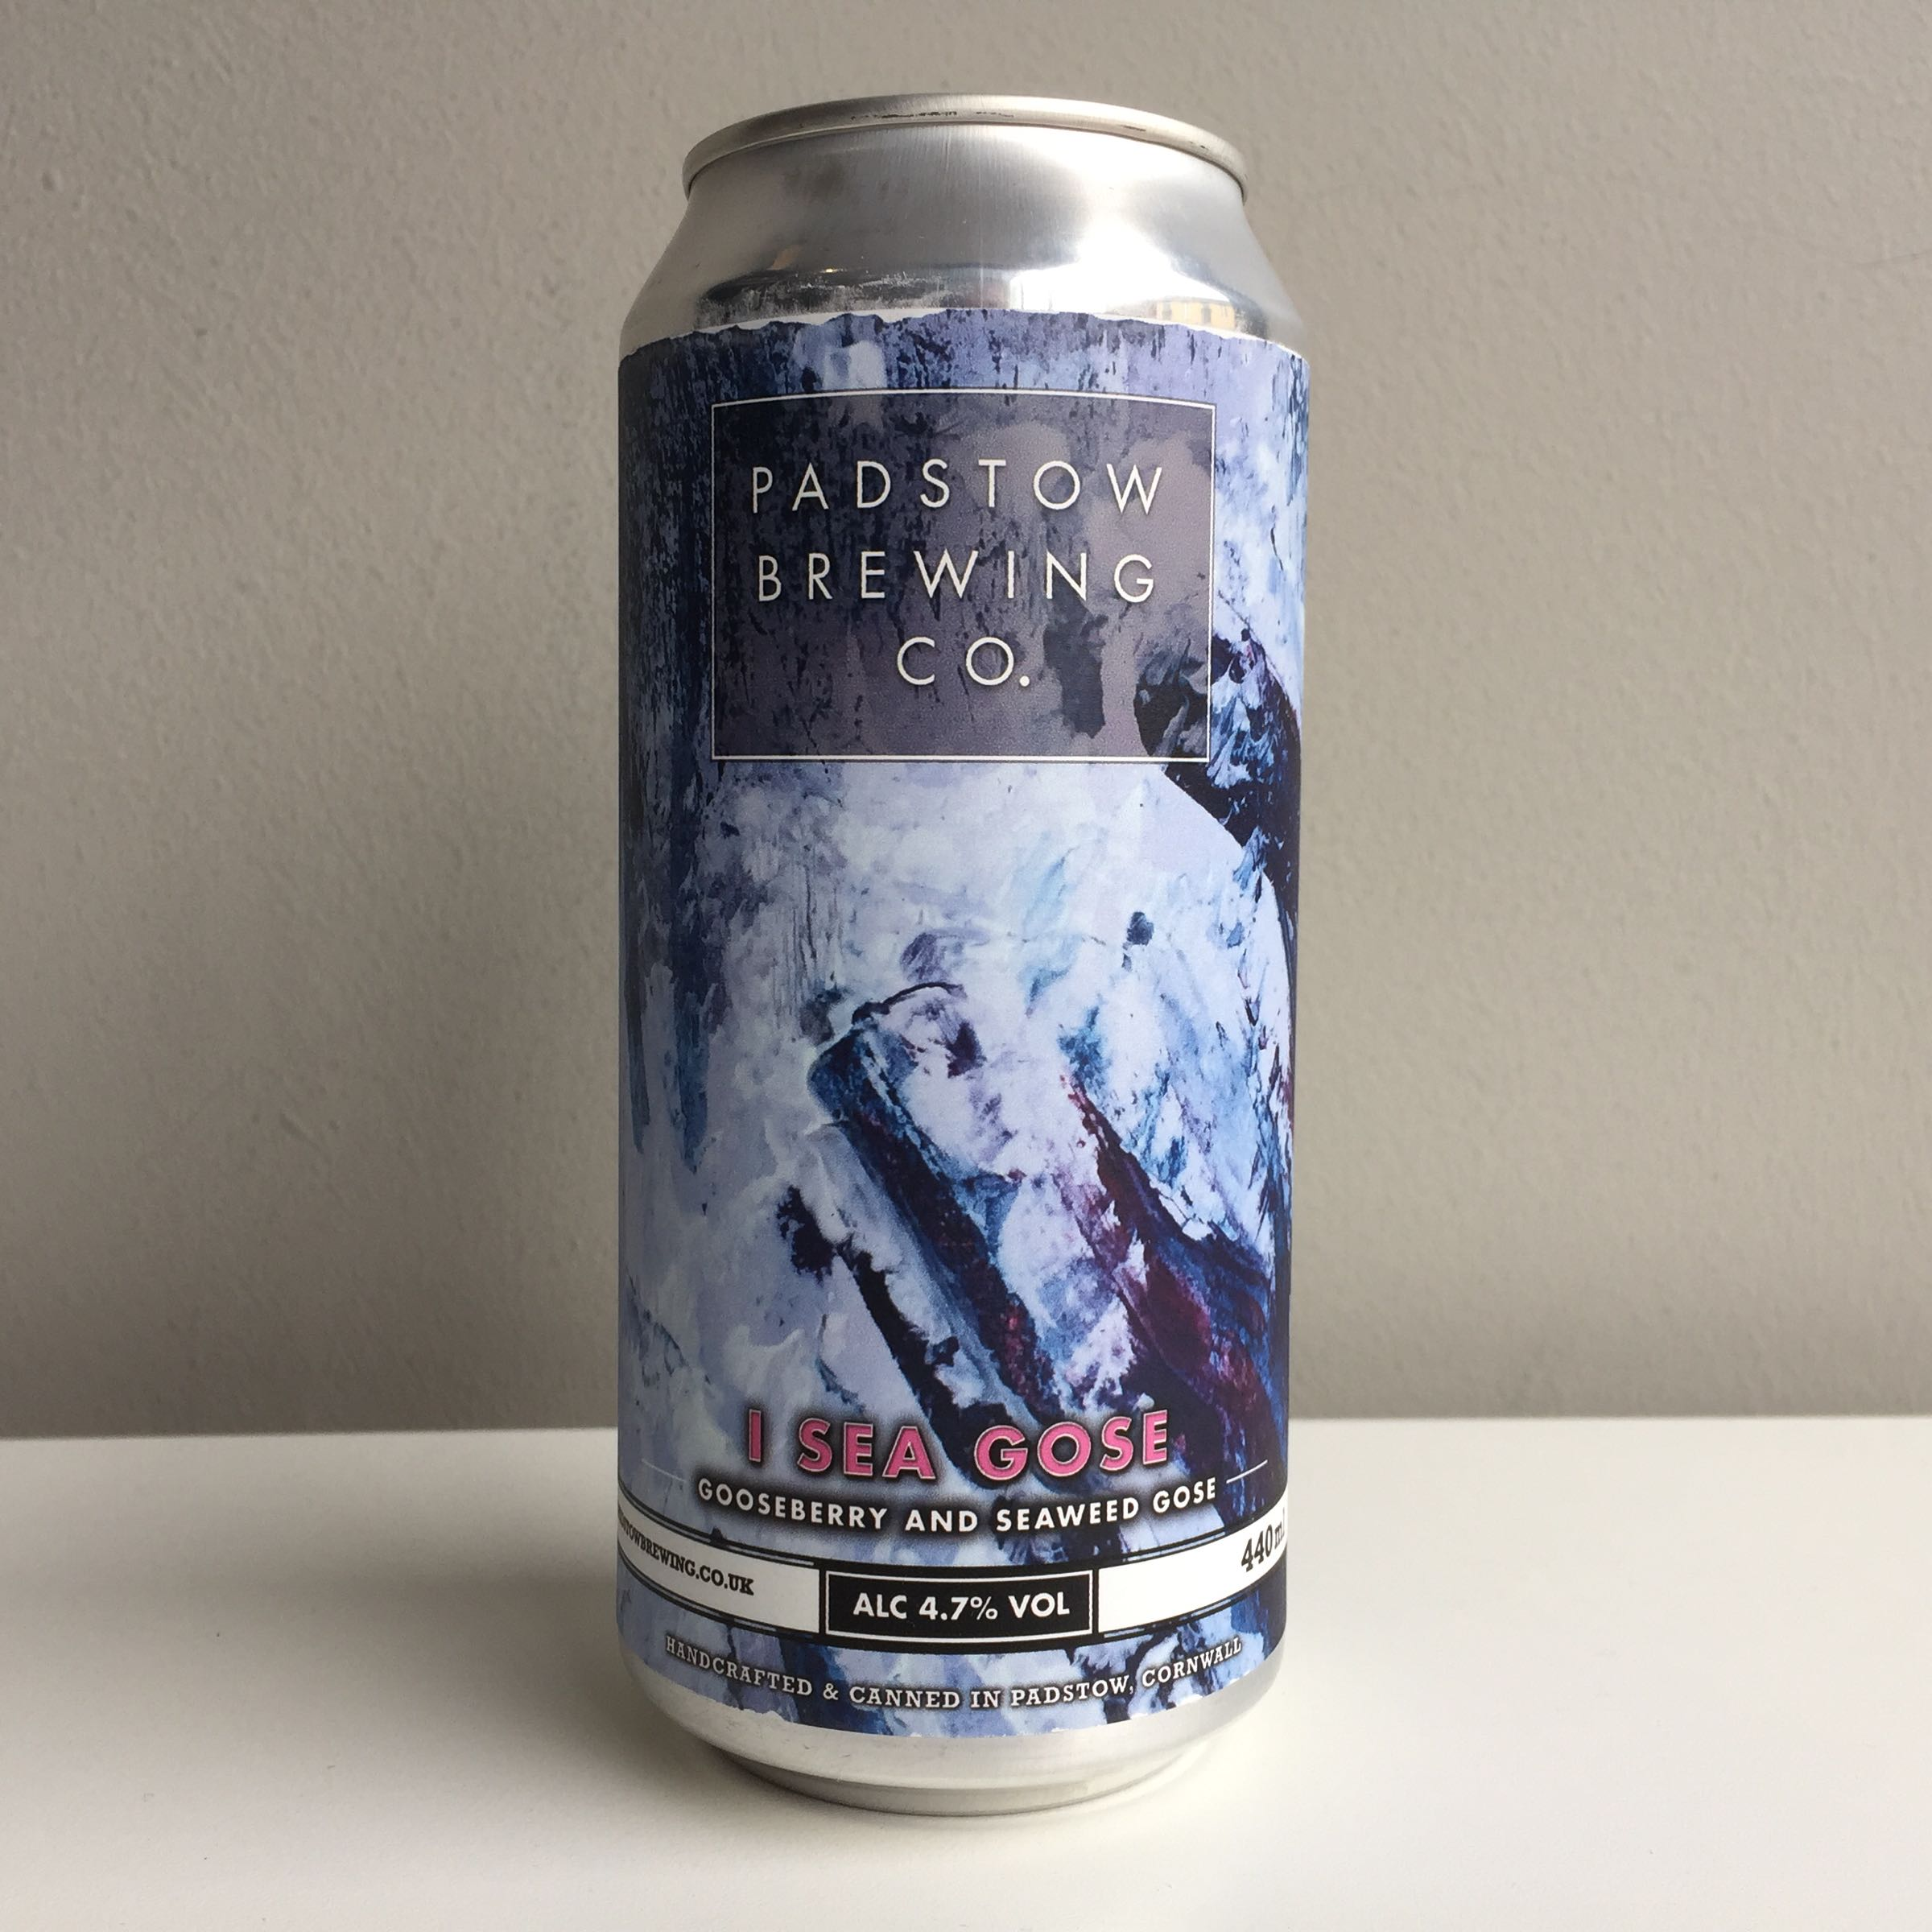 Padstow Brewing Co. 'I See Gose' Gooseberry and Seaweed Gose 440ml 4.7% ABV